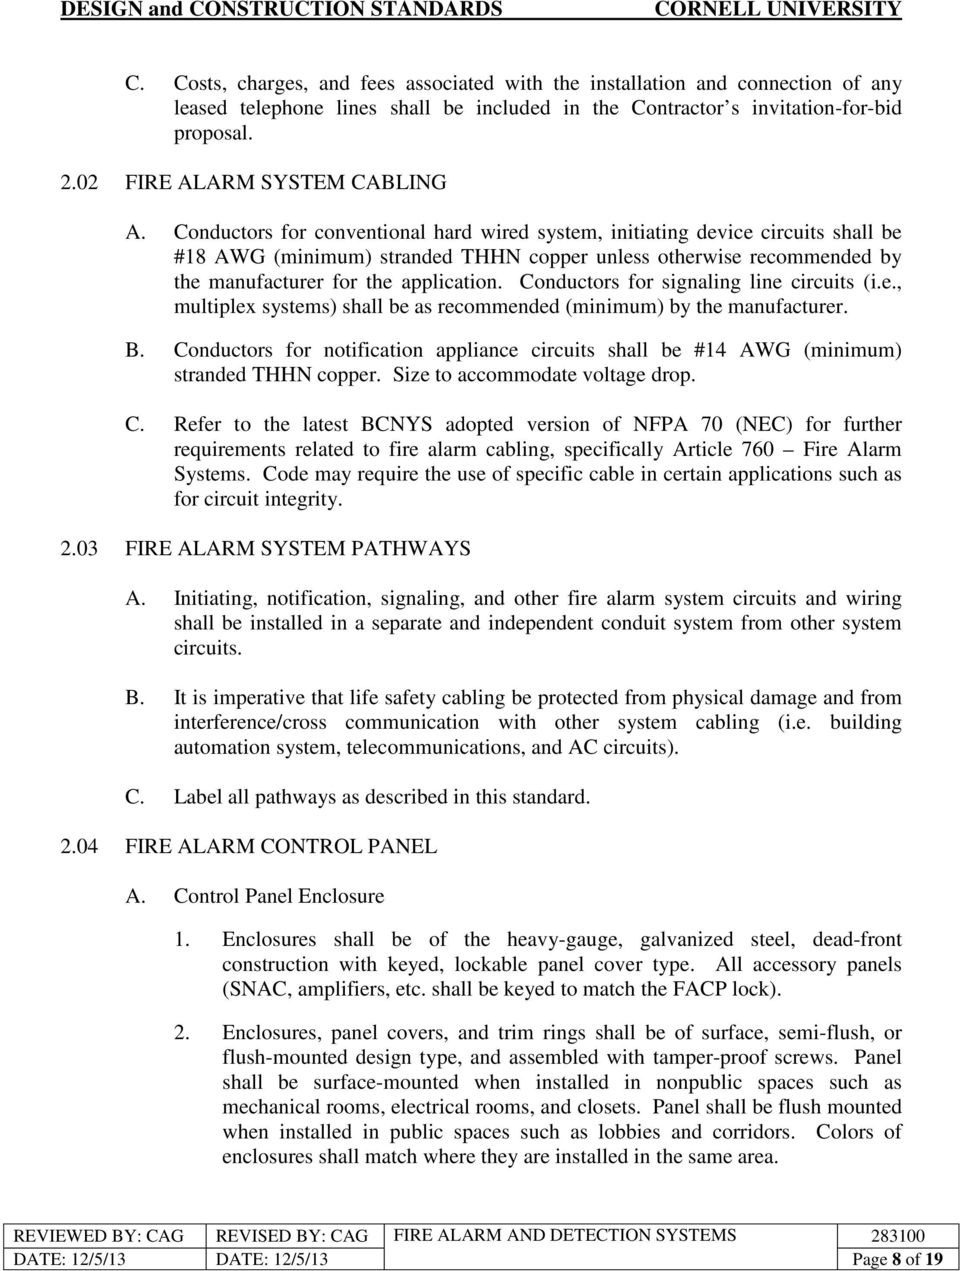 Fire Alarm And Detection Systems Pdf System Diagram Conductors For Conventional Hard Wired Initiating Device Circuits Shall Be 18 Awg 9 3 A